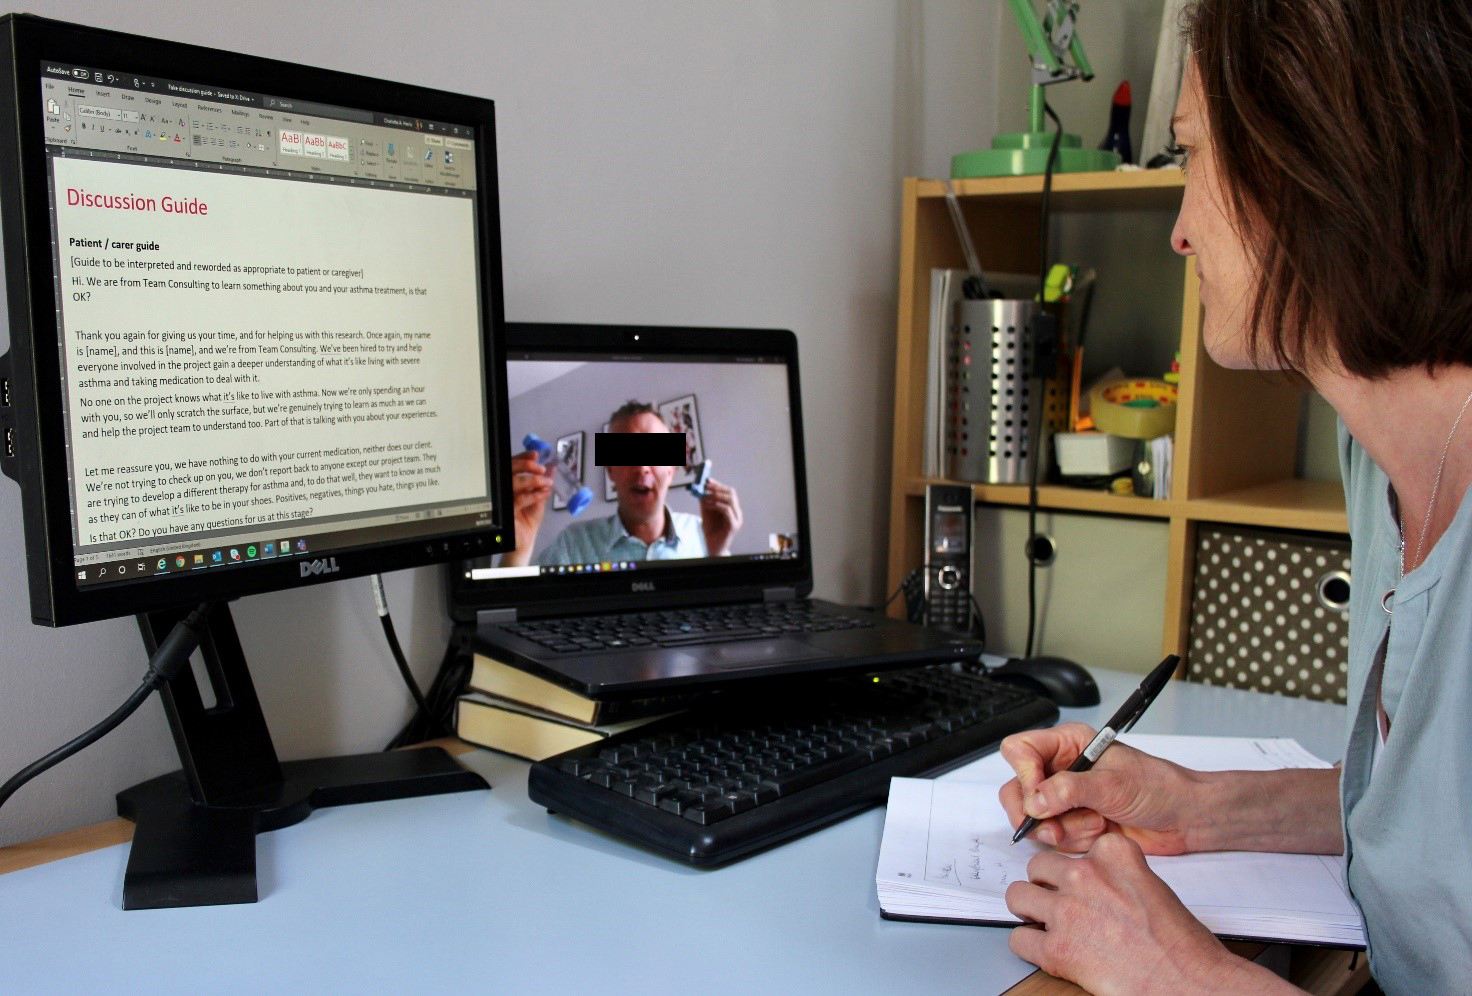 medical device innovation taking place remotely